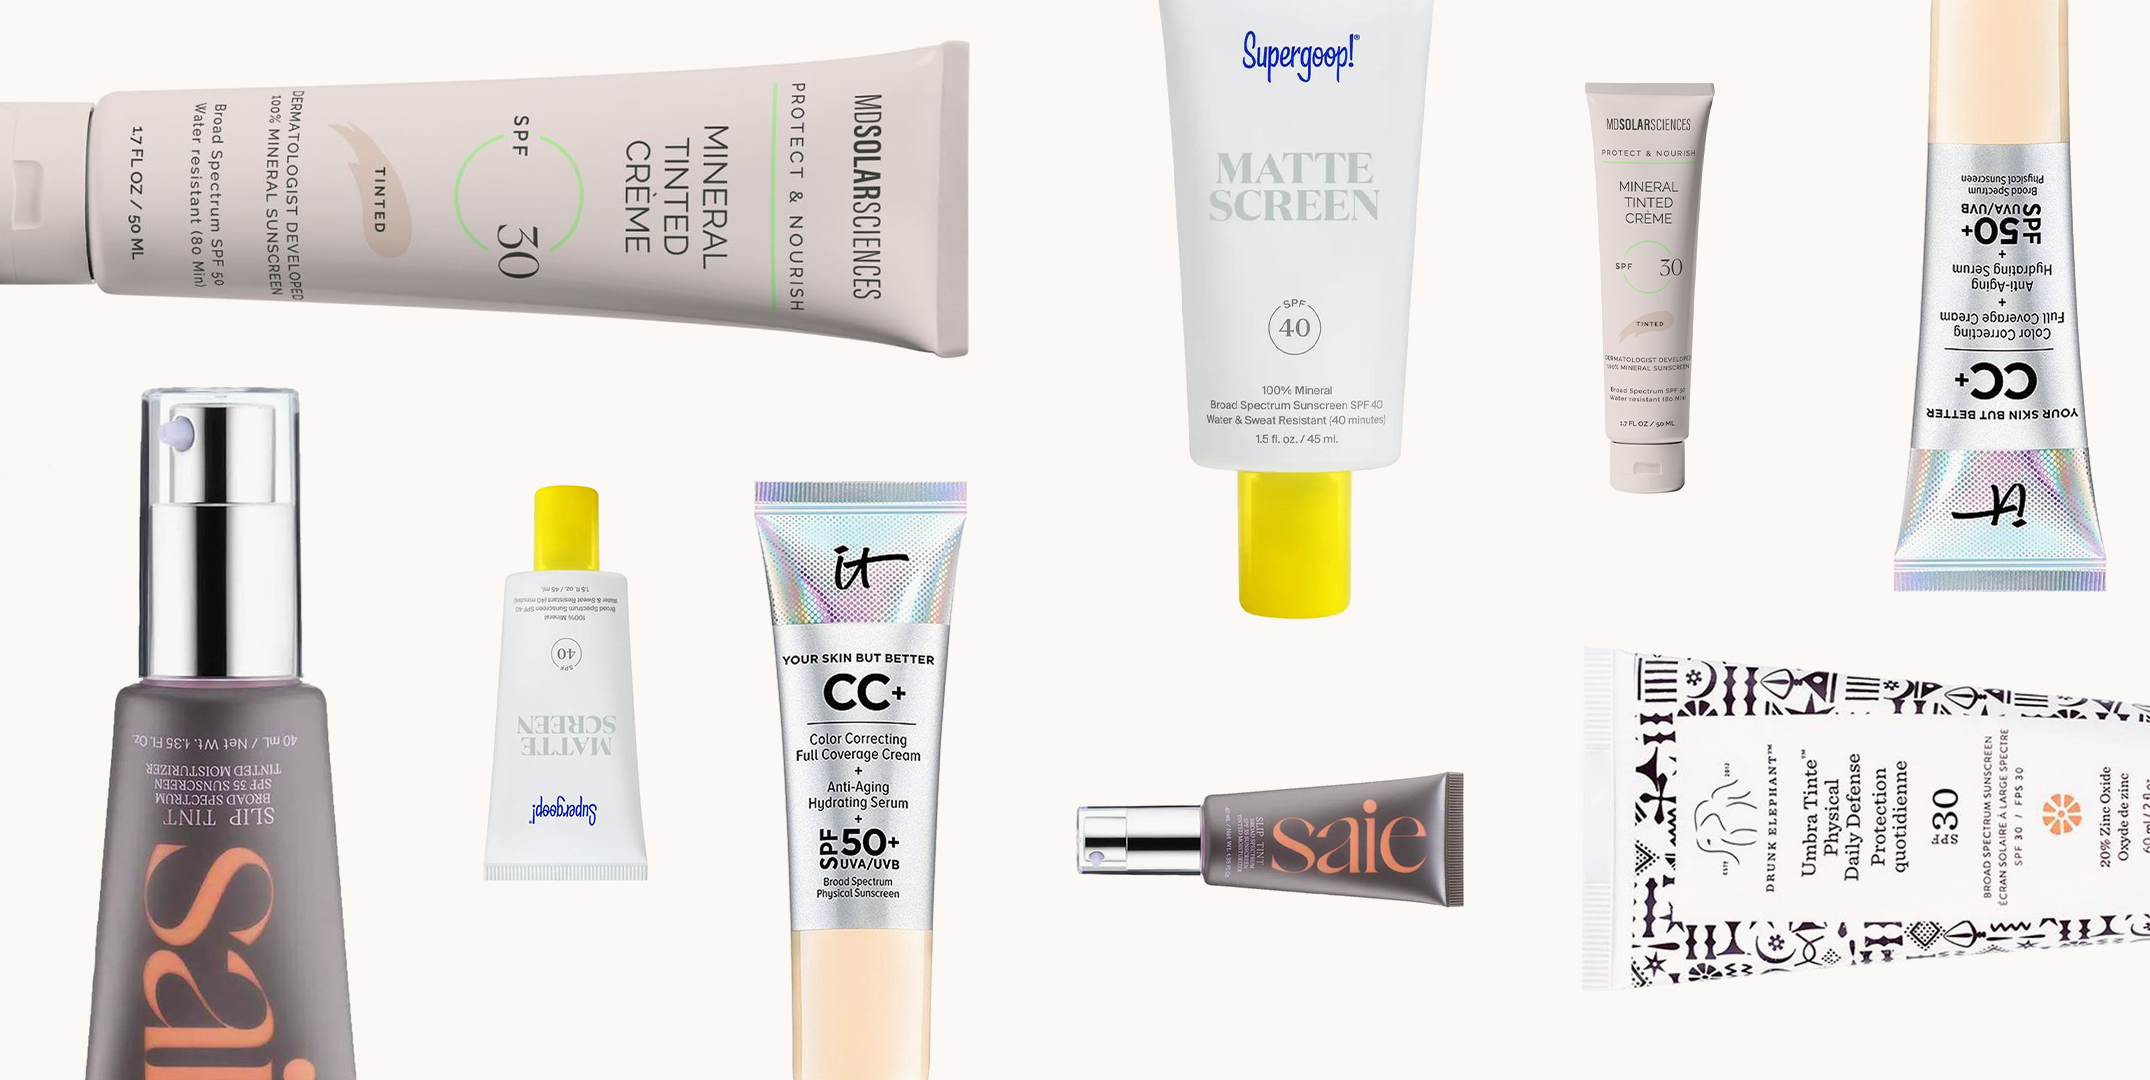 9 Best Tinted Sunscreens You Should Add to Your Routine ASAP